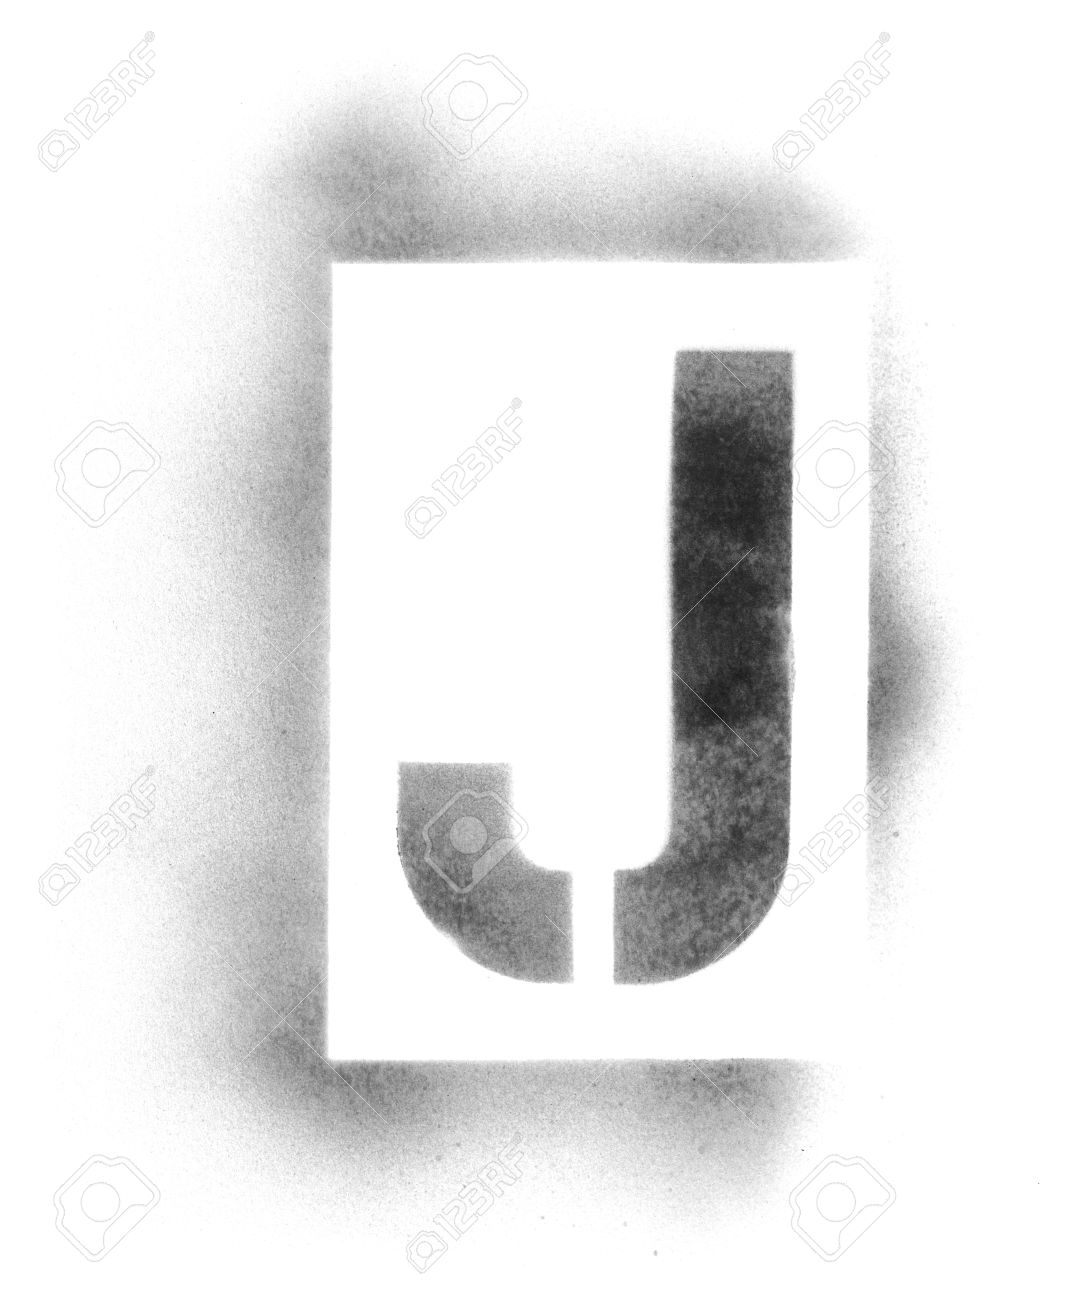 stencil letters in spray paint stock photo 5041345